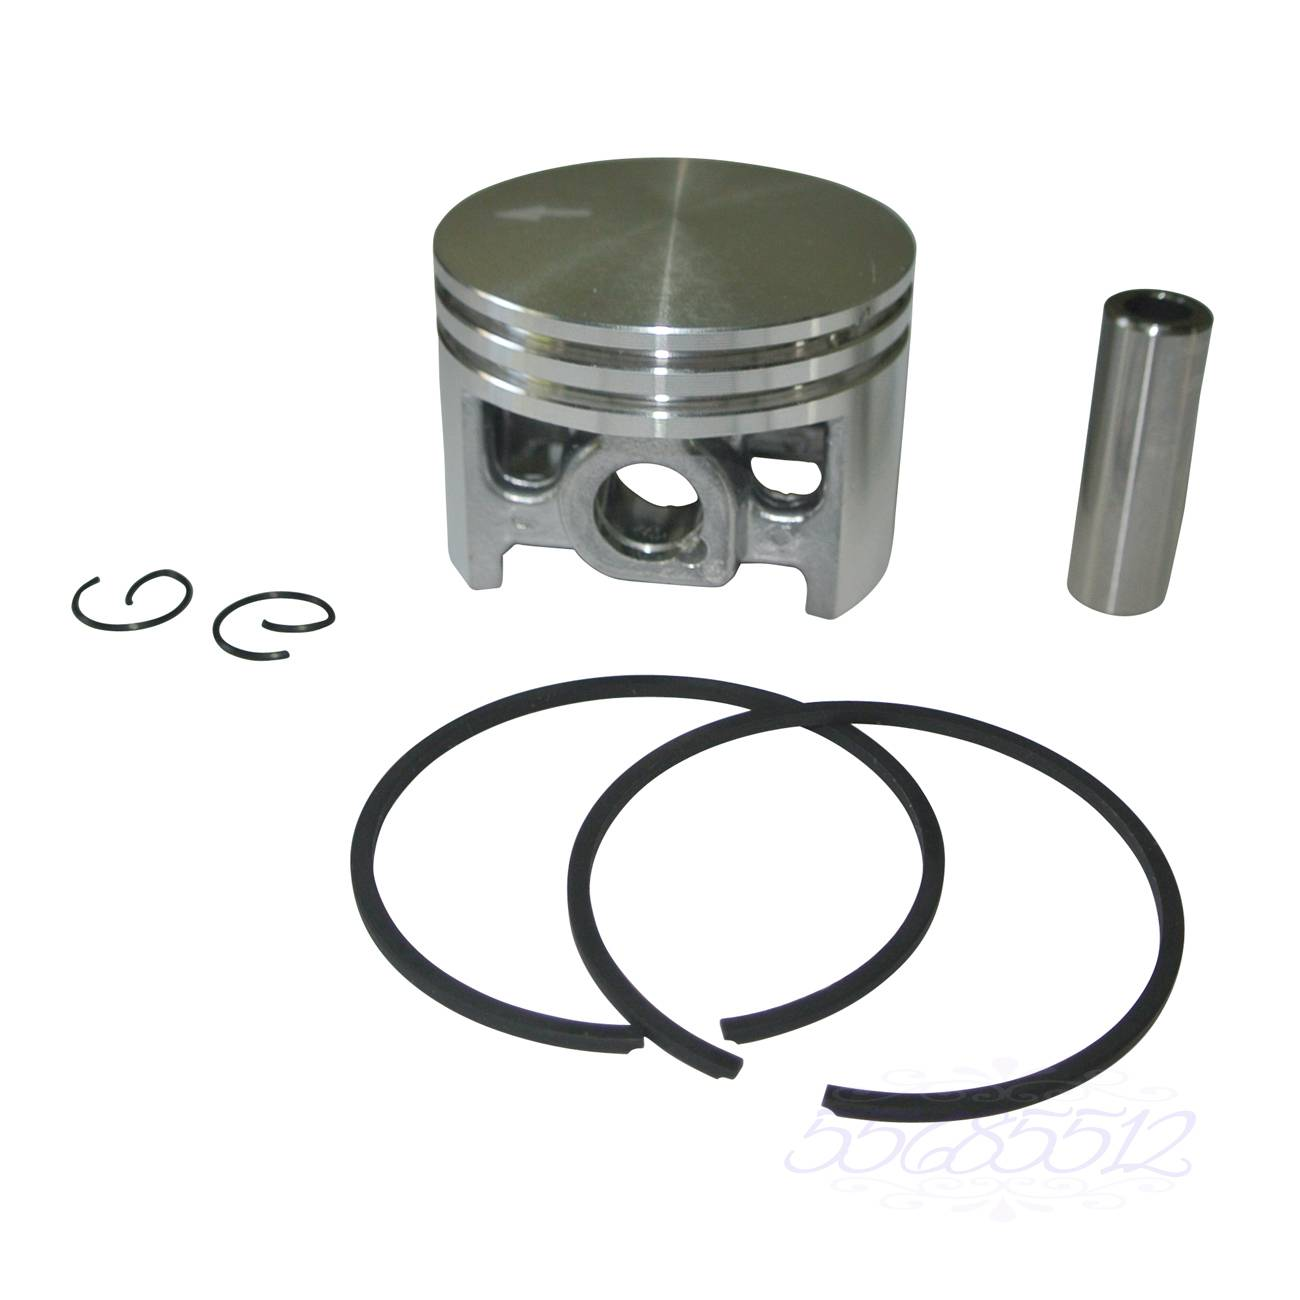 44mm Piston ve Halkalar Kiti Fit Stihl 026 MS260 MS260C 026 PRO Testereler 2